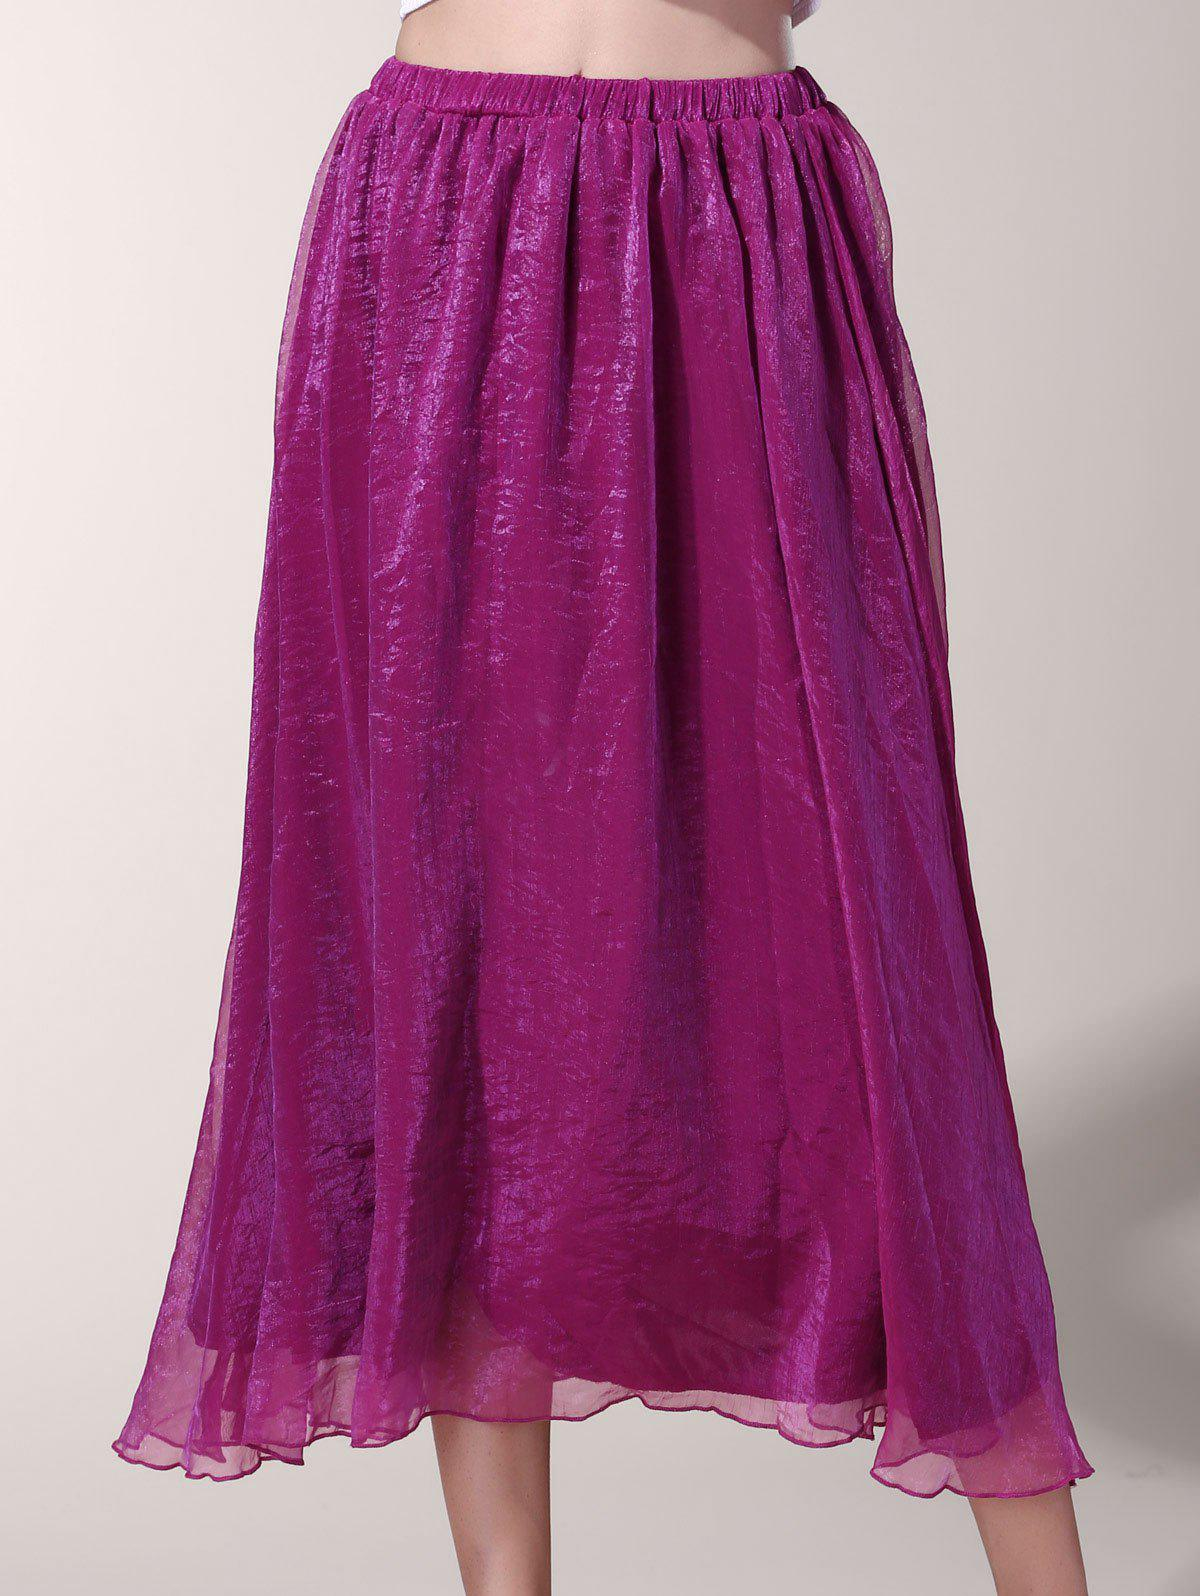 Chic Elastic Waist Chiffon Pure Color Women's Maxi Skirt - PURPLE L